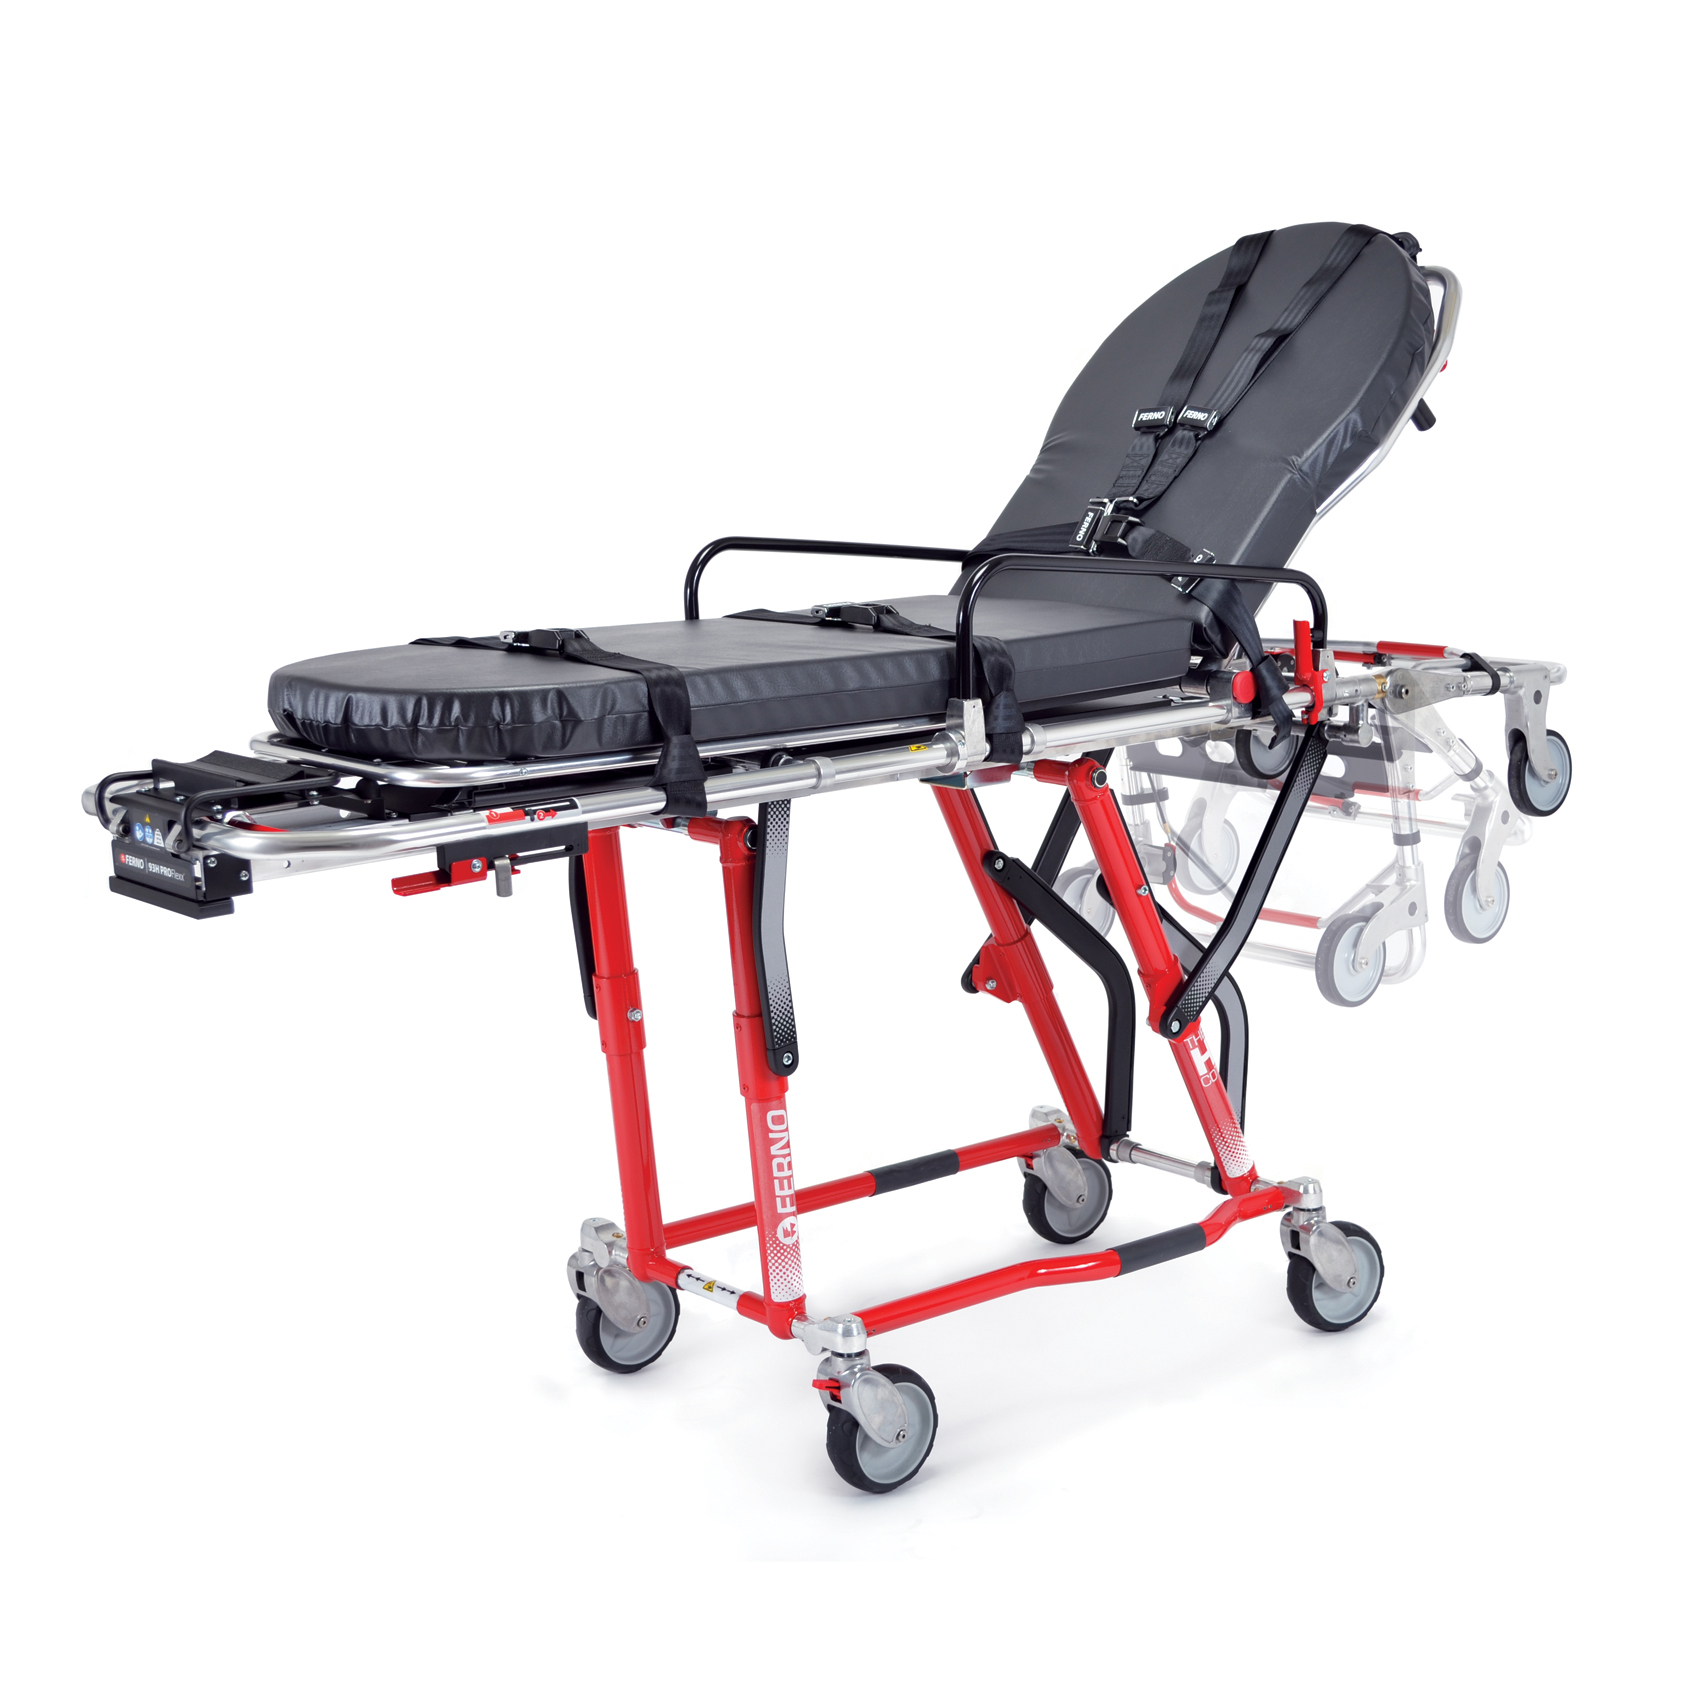 Stryker Stair Chair Ferno 93p Pro Flexx Ferno Ambulance Stretchers Cot